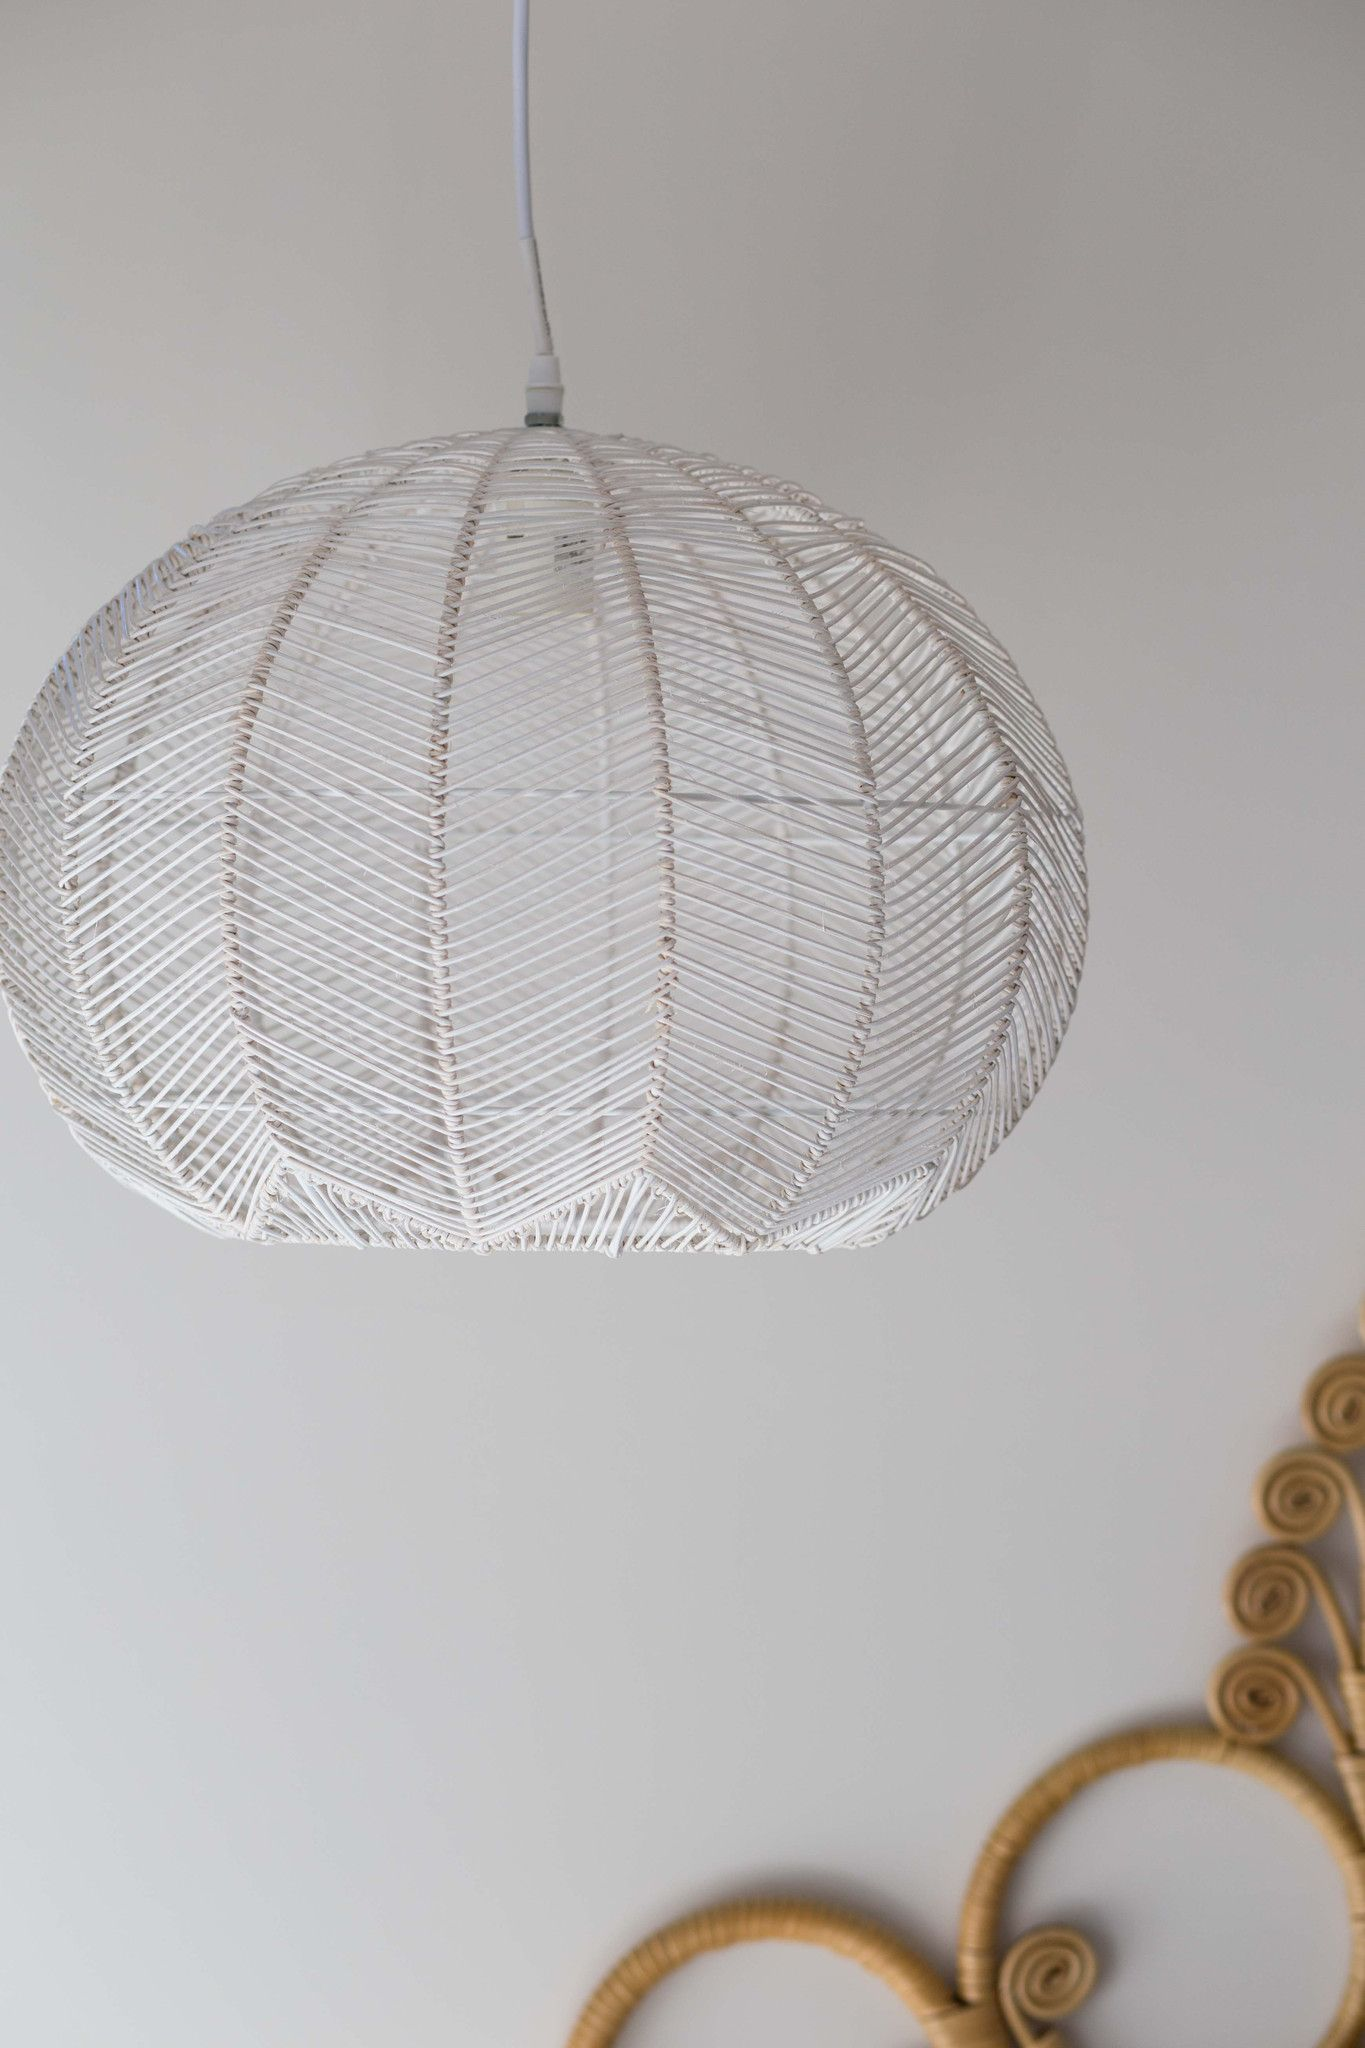 White Round Rattan Pendant Pre Order My Little Apartment Electrical Wiring Light Fixture Ceiling Canopy Lighting Products Canopies